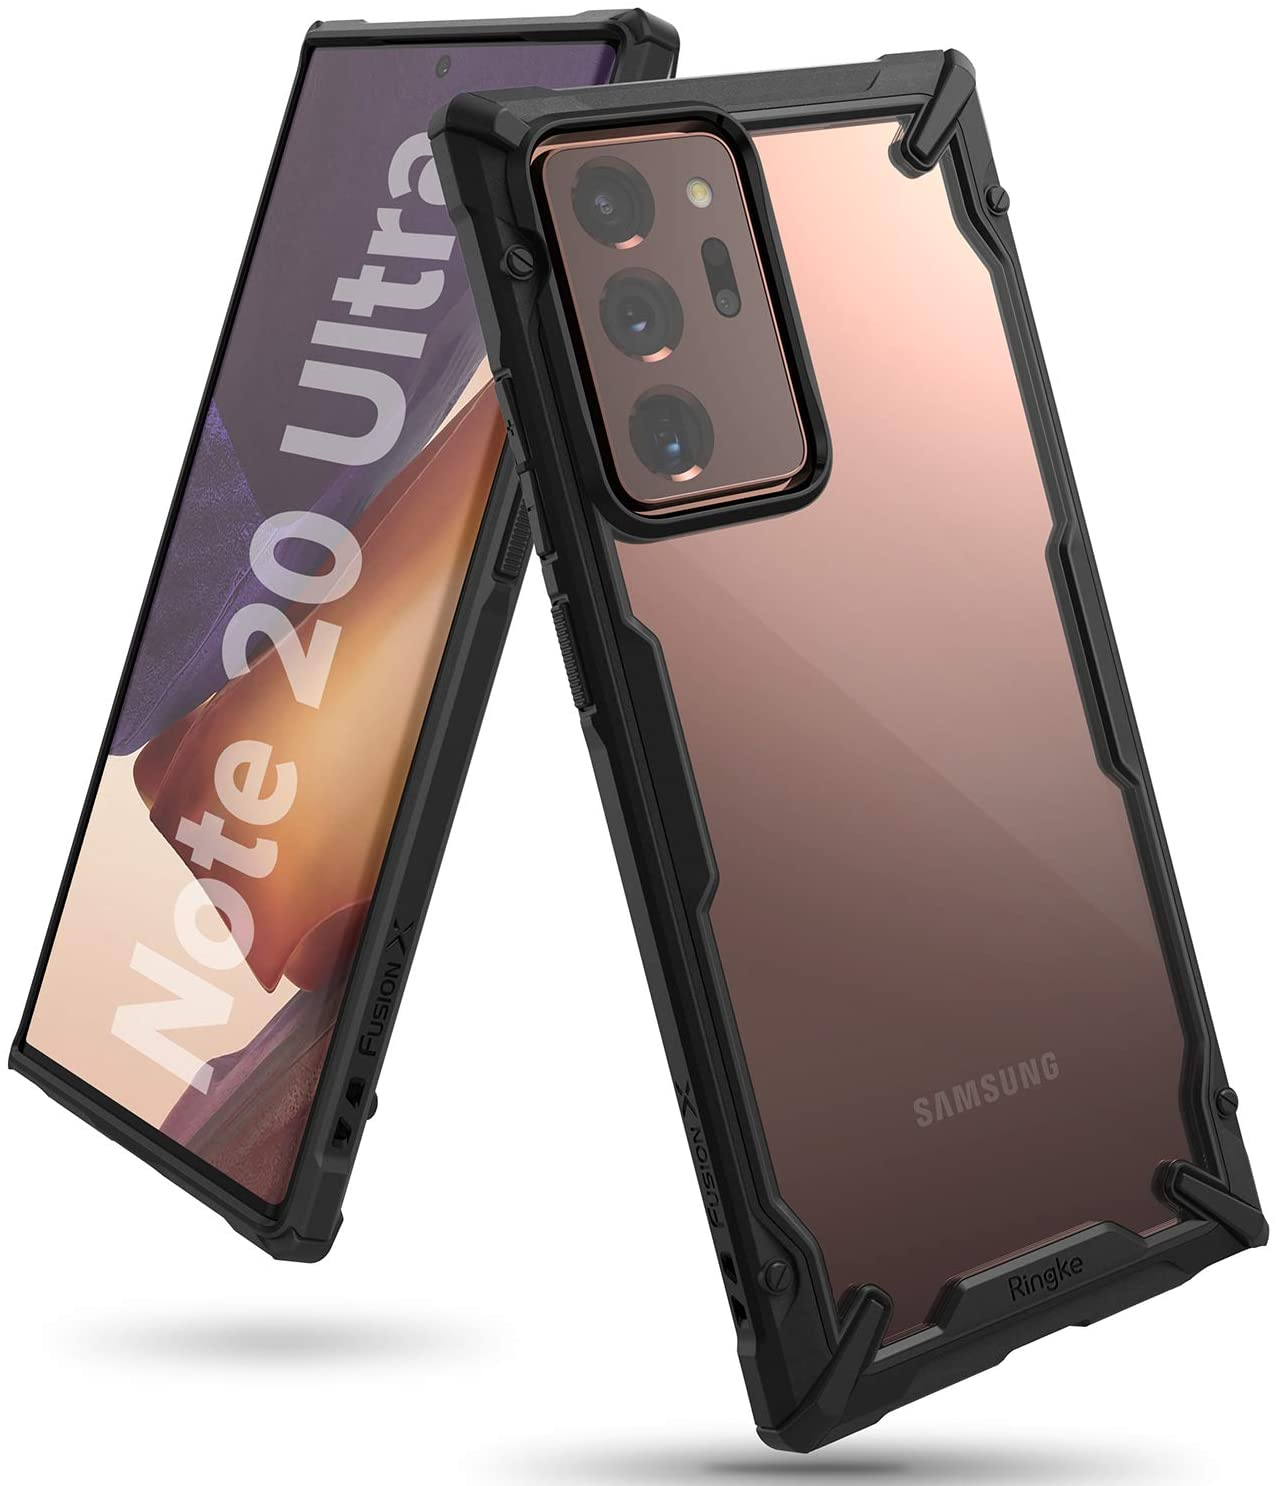 Ringke Fusion X Case Designed for Galaxy Note 20 Ultra